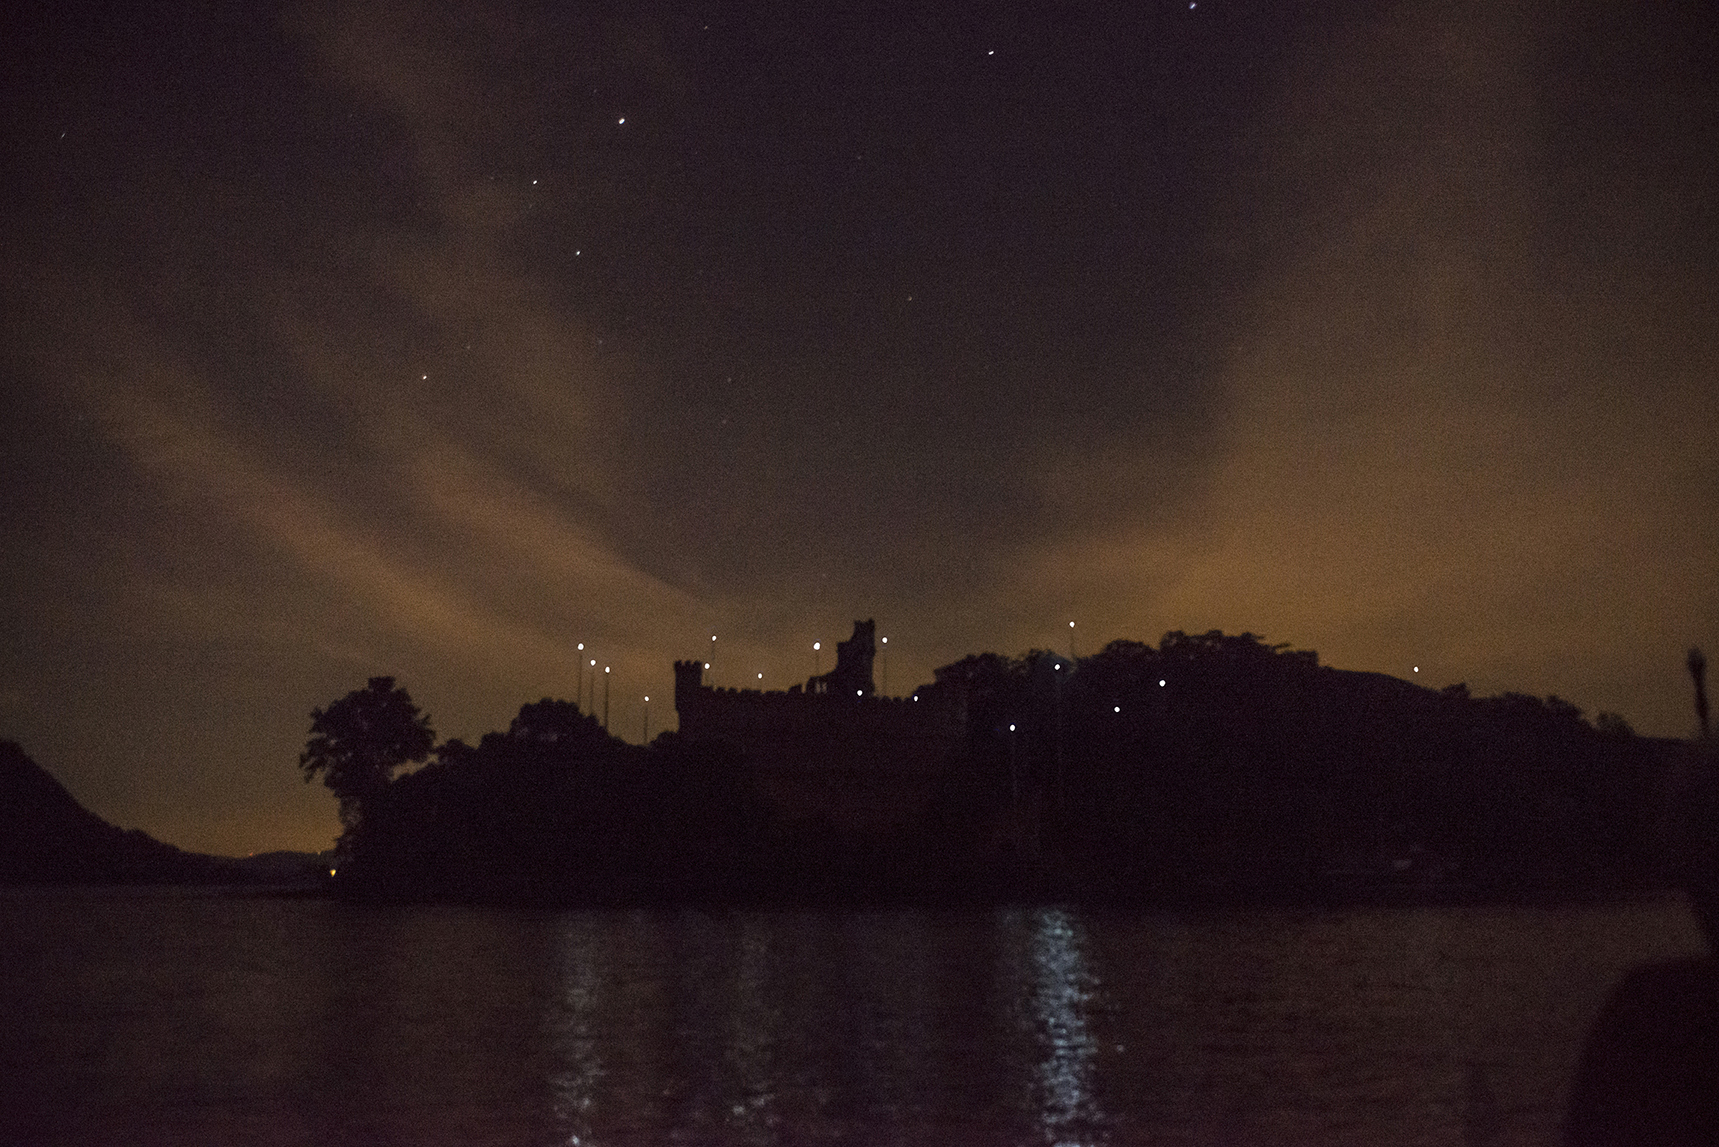 Lights fantastic transform crumbling castle on a Hudson River island